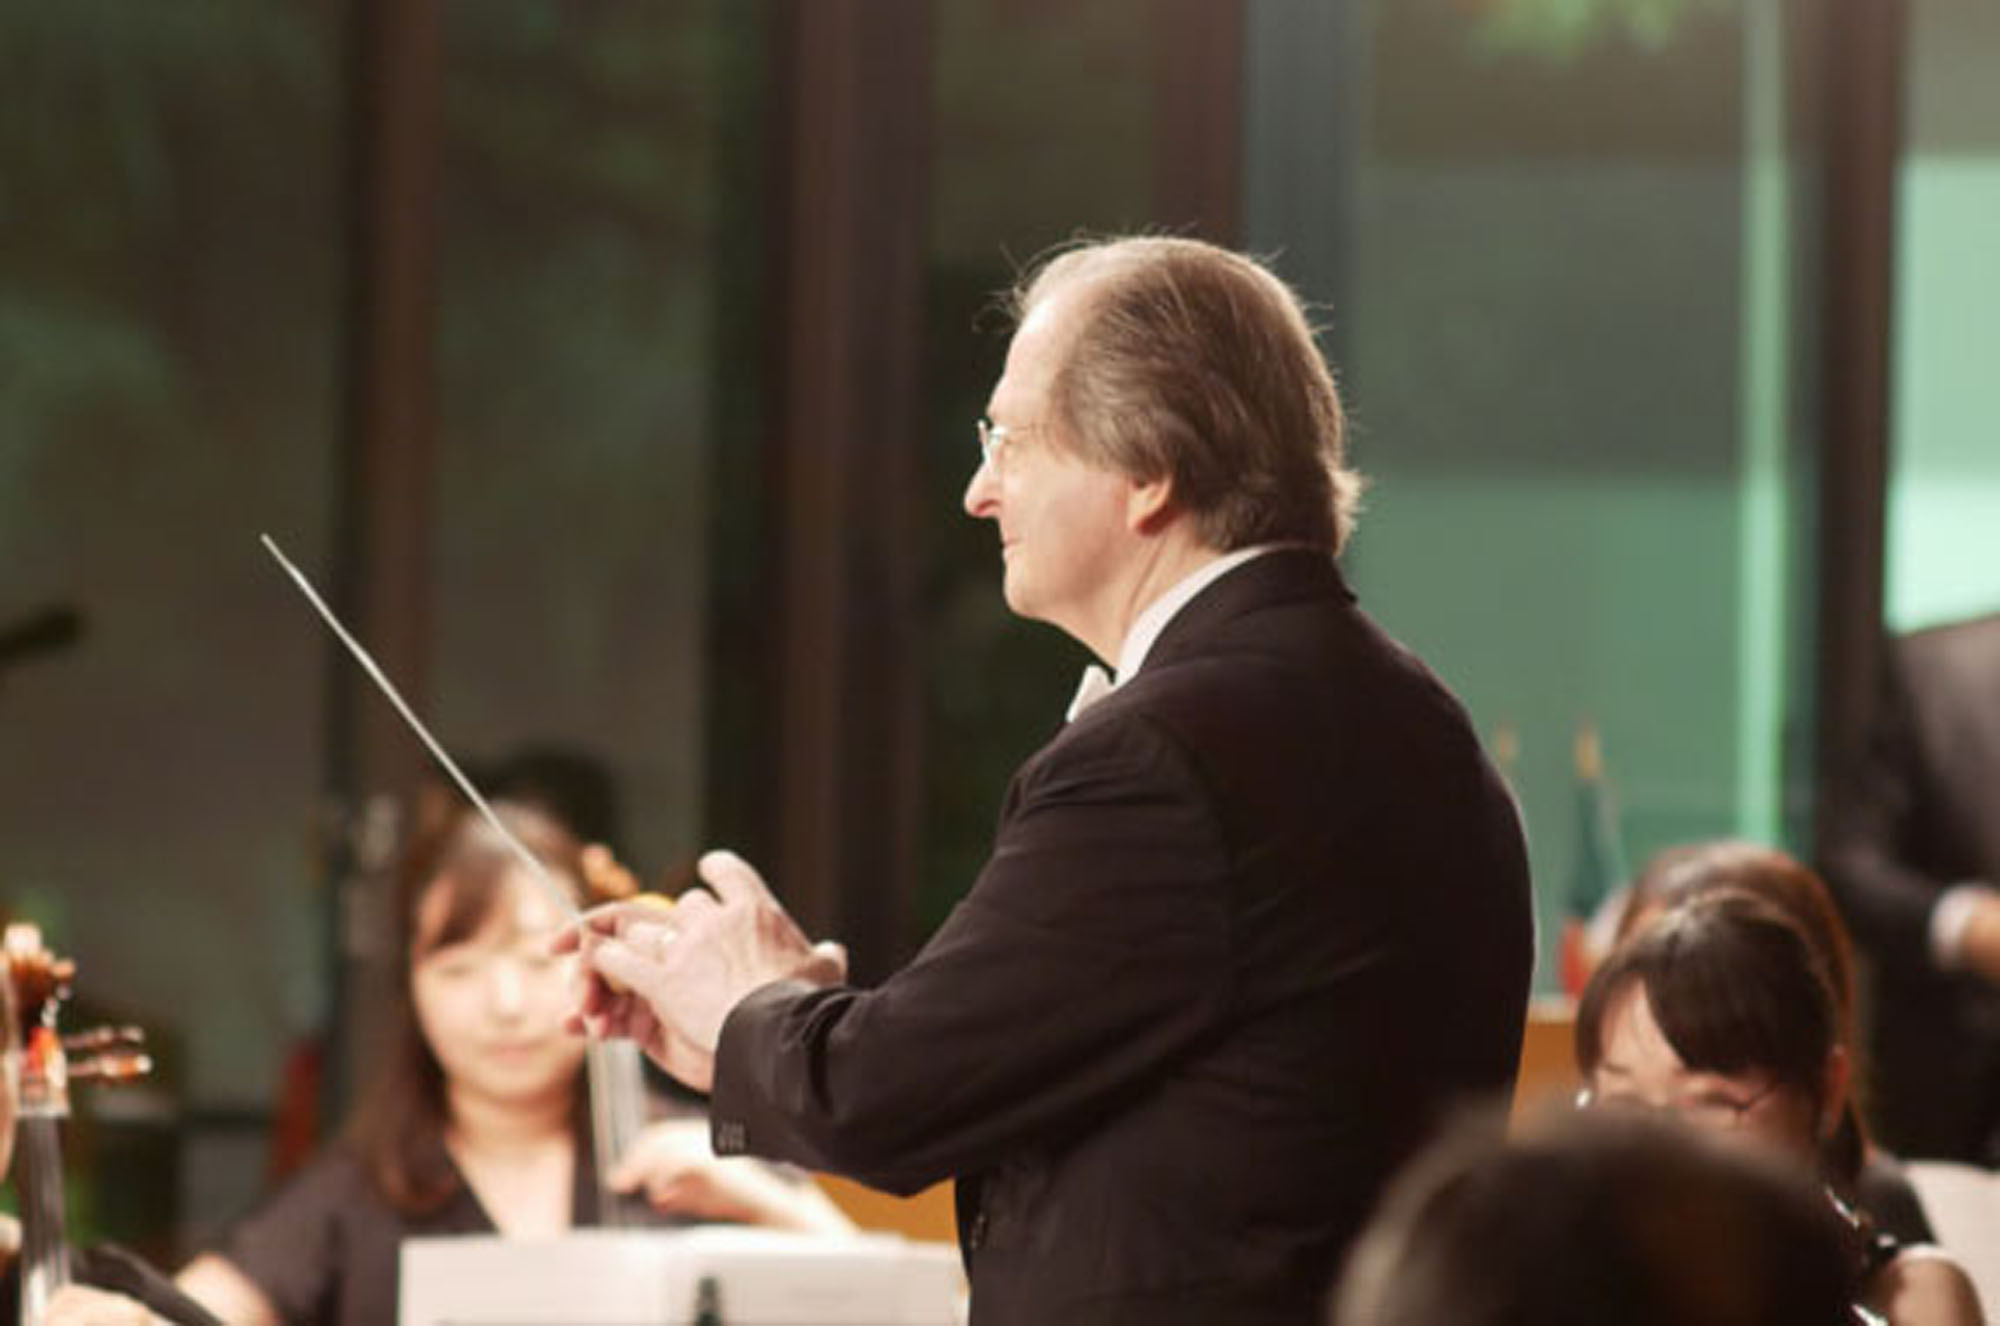 Waving the baton: Robert Ryker founded Tokyo Sinfonia in 2006 after years of playing the tuba and conducting other orchestras. By making changes to classical works, he is able to provide a new take on well-known compositions with the Sinfonia's 19 members. | COURTESY OF TOKYO SINFONIA